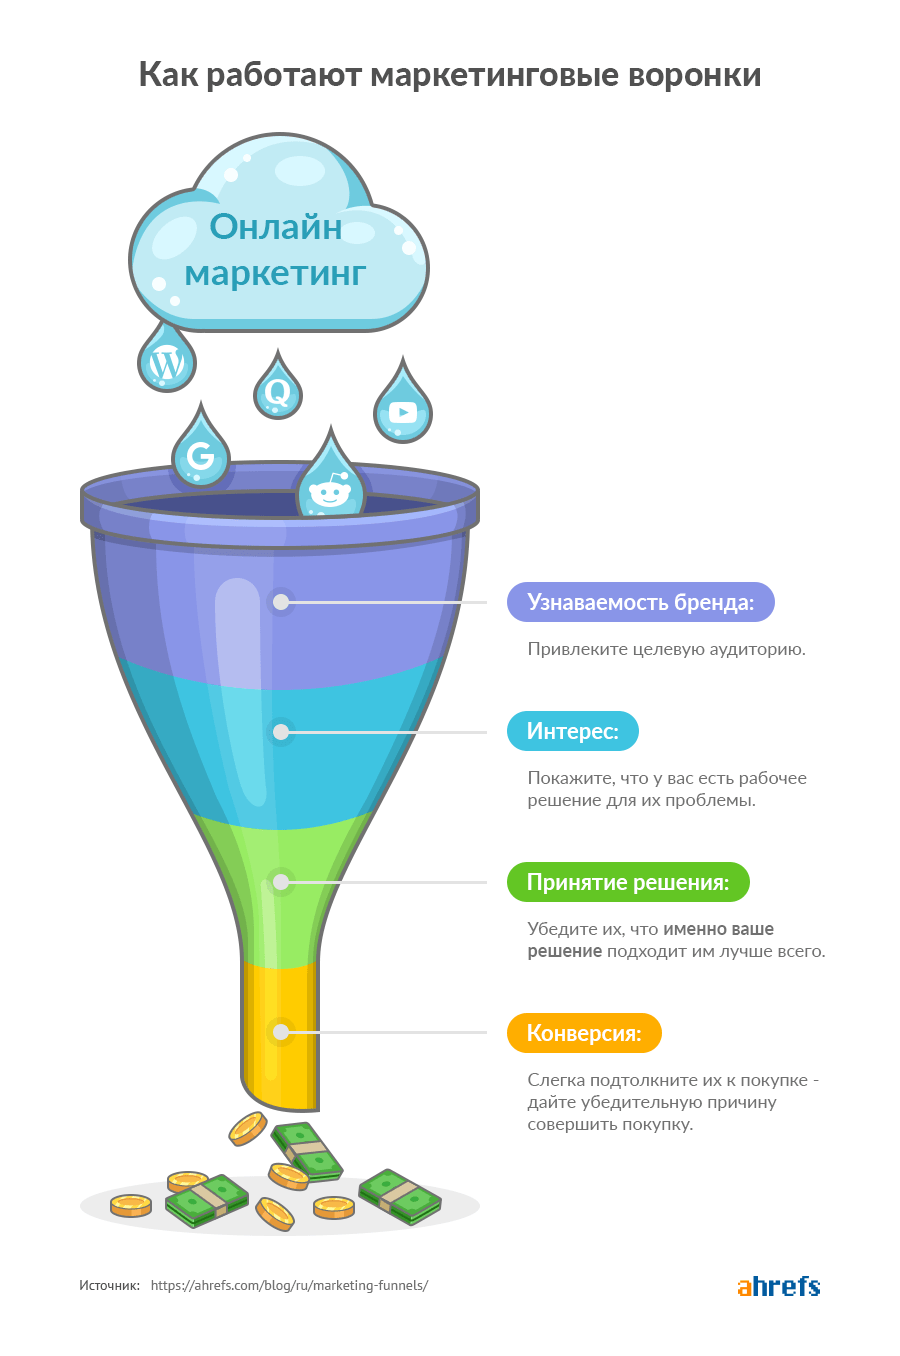 marketing funnels image ru 01